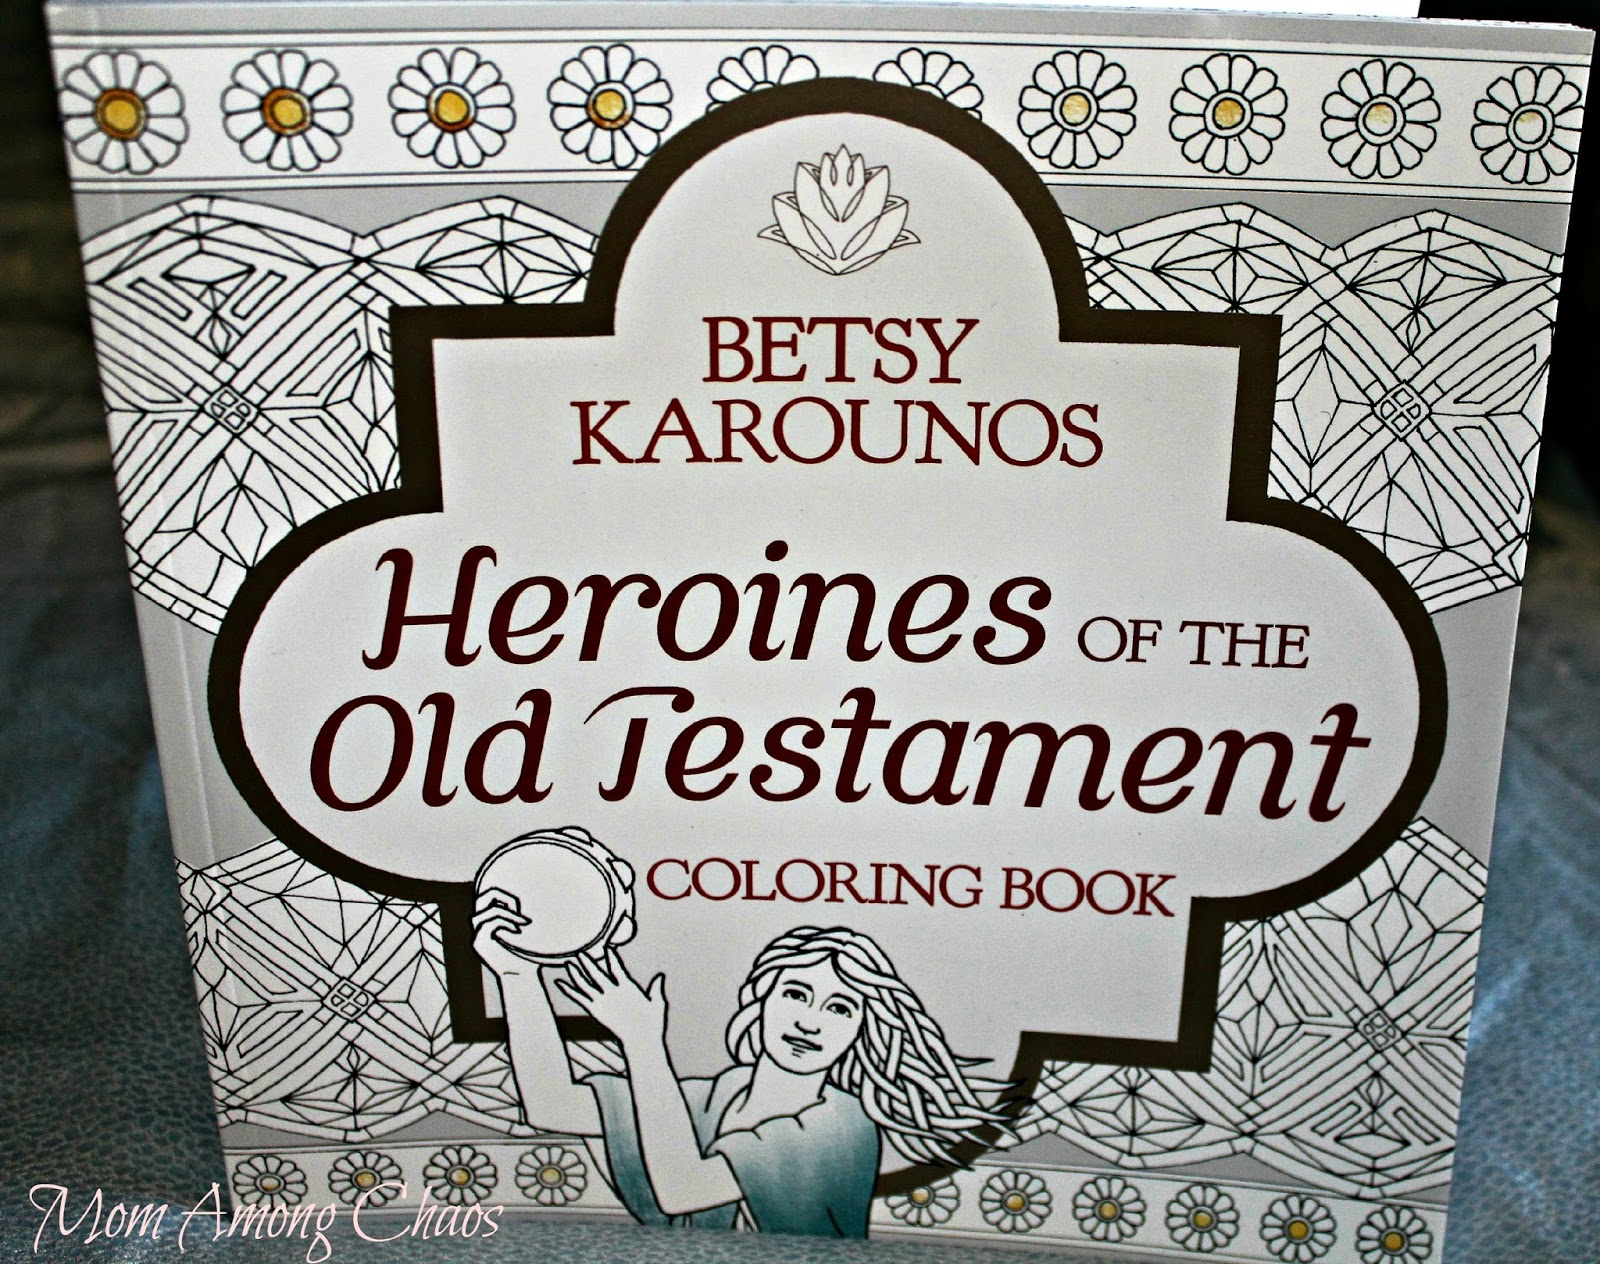 Heroines Of The New Testament Review Coloring Book Bible Meditation Relaxation